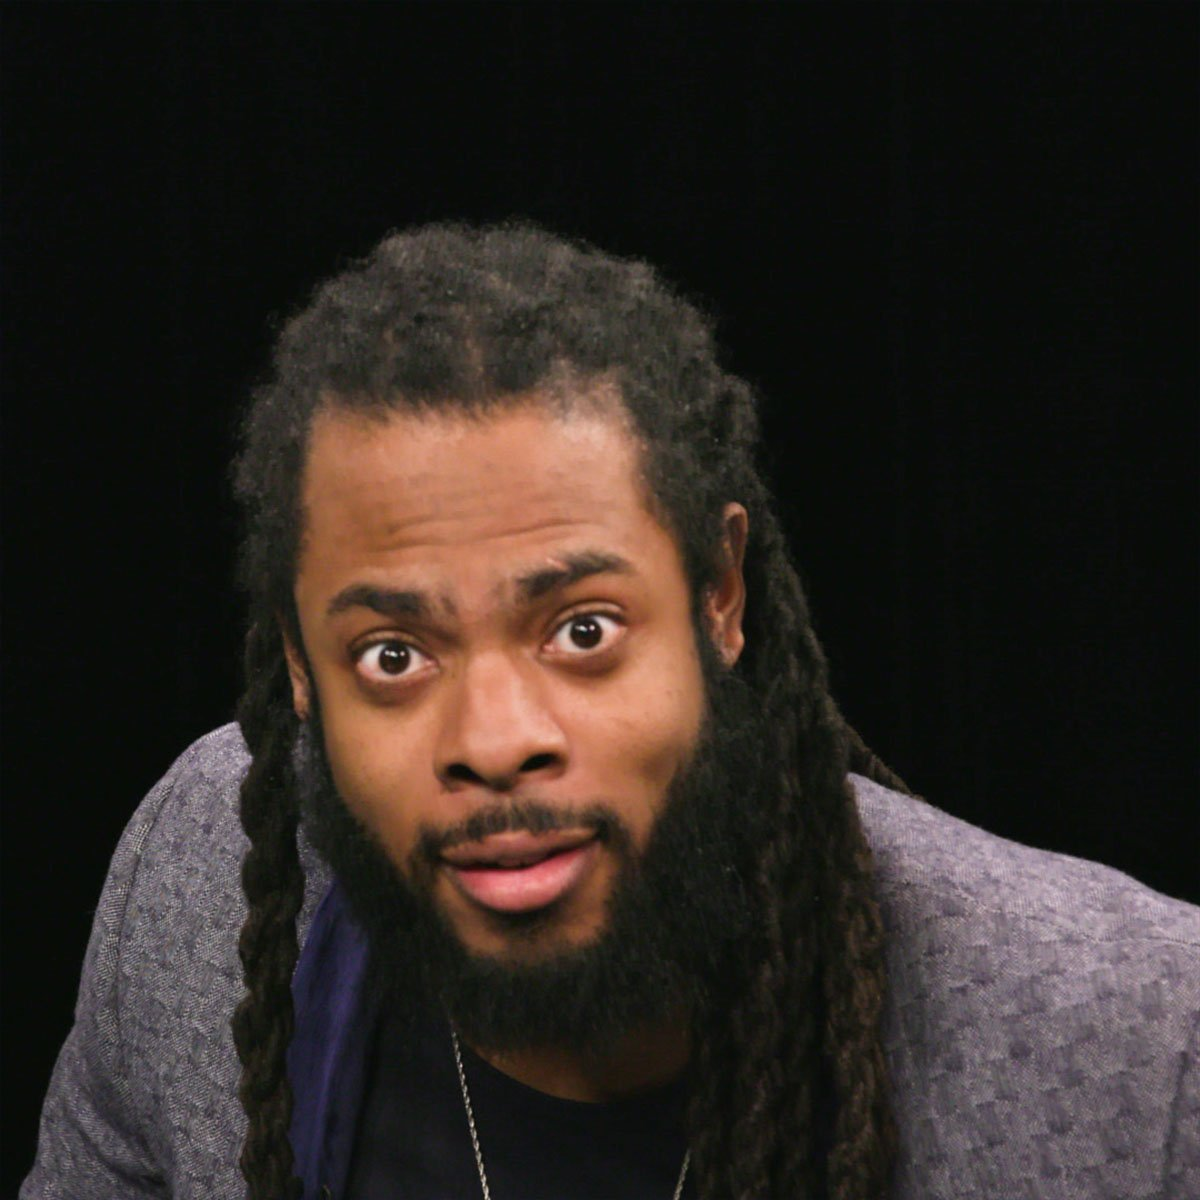 Image for the Tweet beginning: This is what Richard Sherman